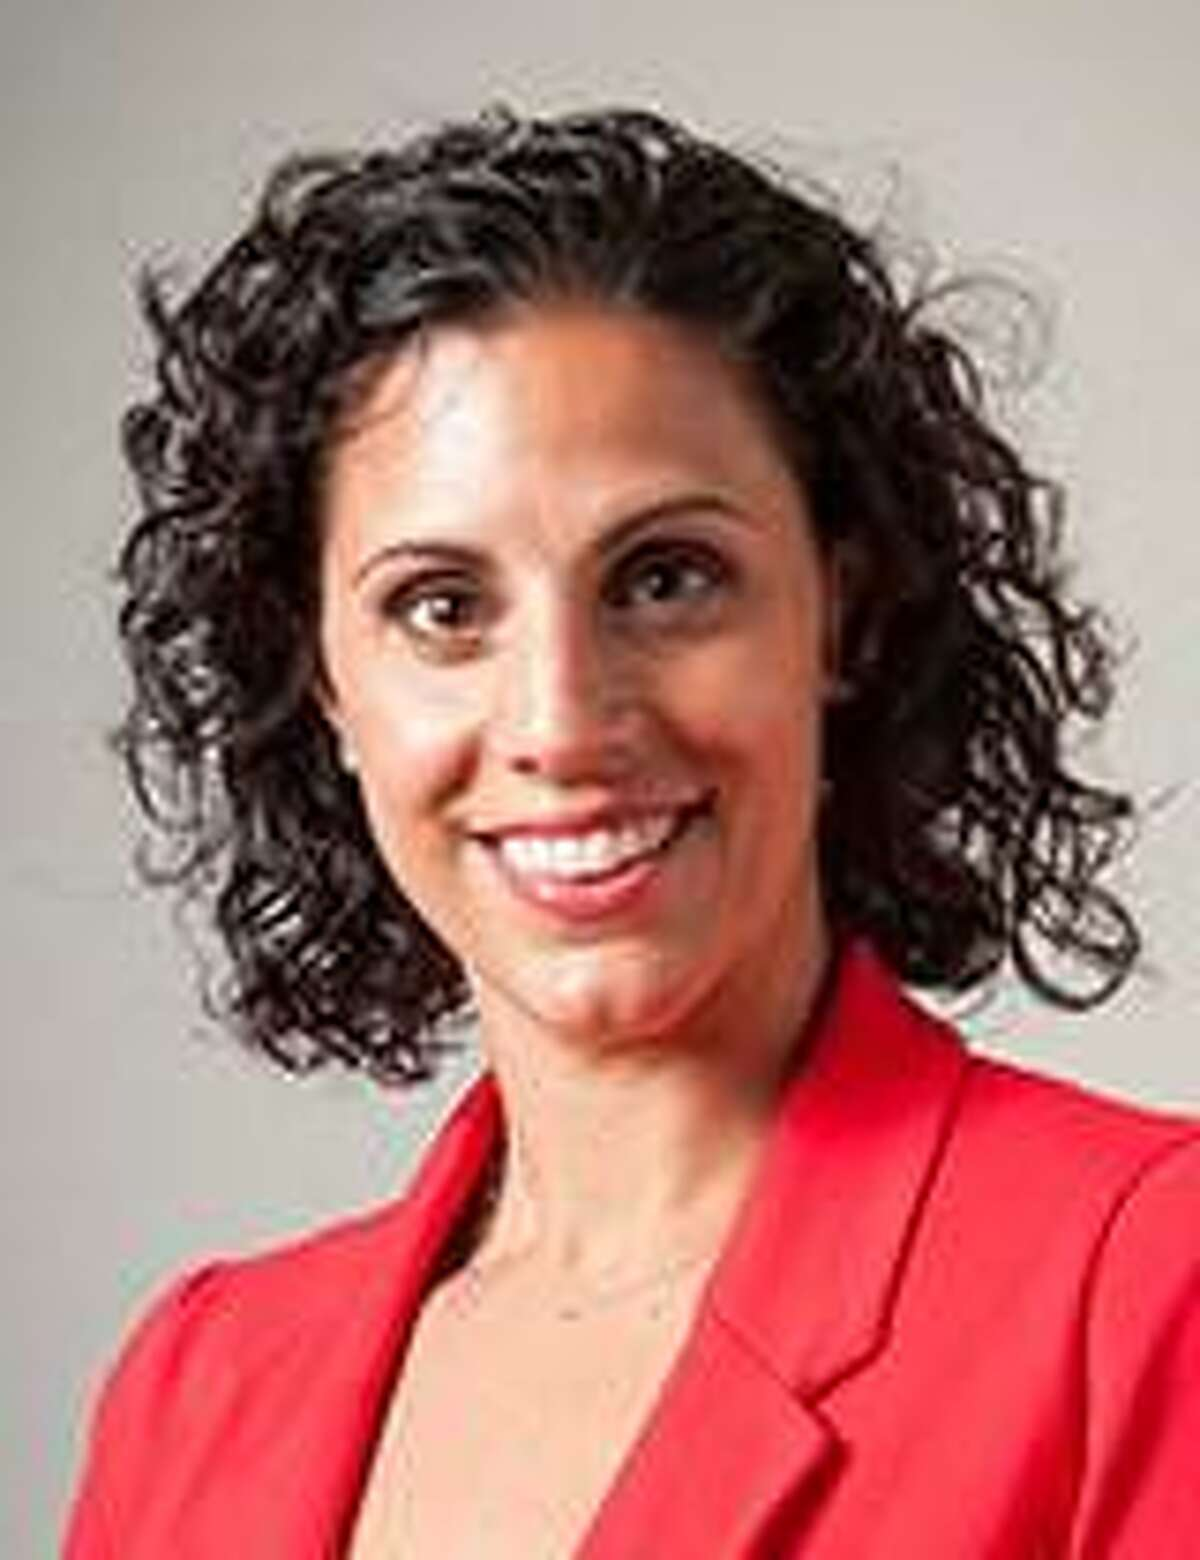 Deena Casiero is the director of sports medicine and the head team physician at UConn